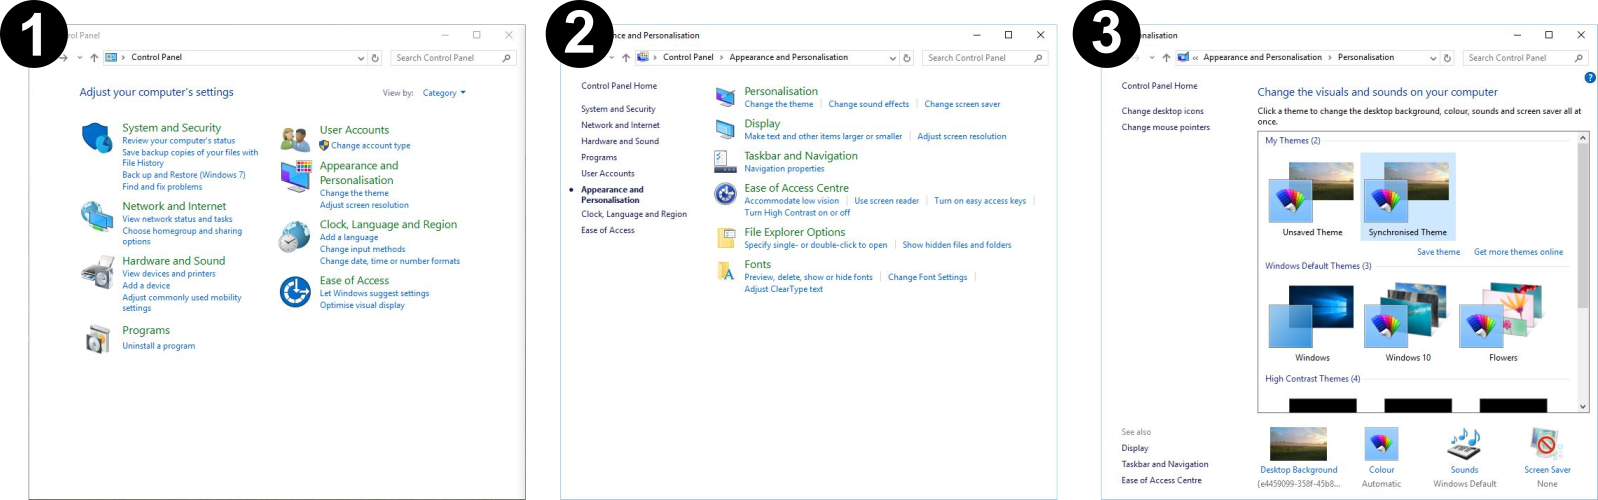 The Old System From Windows 7 Retained In 10 Below Is Complete And Familiar But It Too Detailed To Be Used By Touch Not Scalable